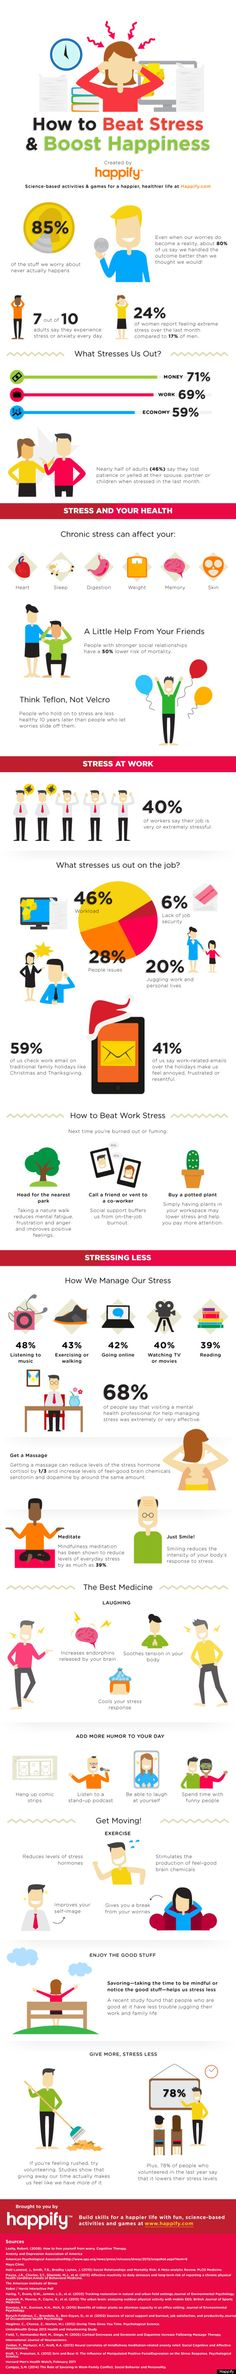 What's not being said? How to Beat Stress and Boost Happiness, via Happify and Huffington Post